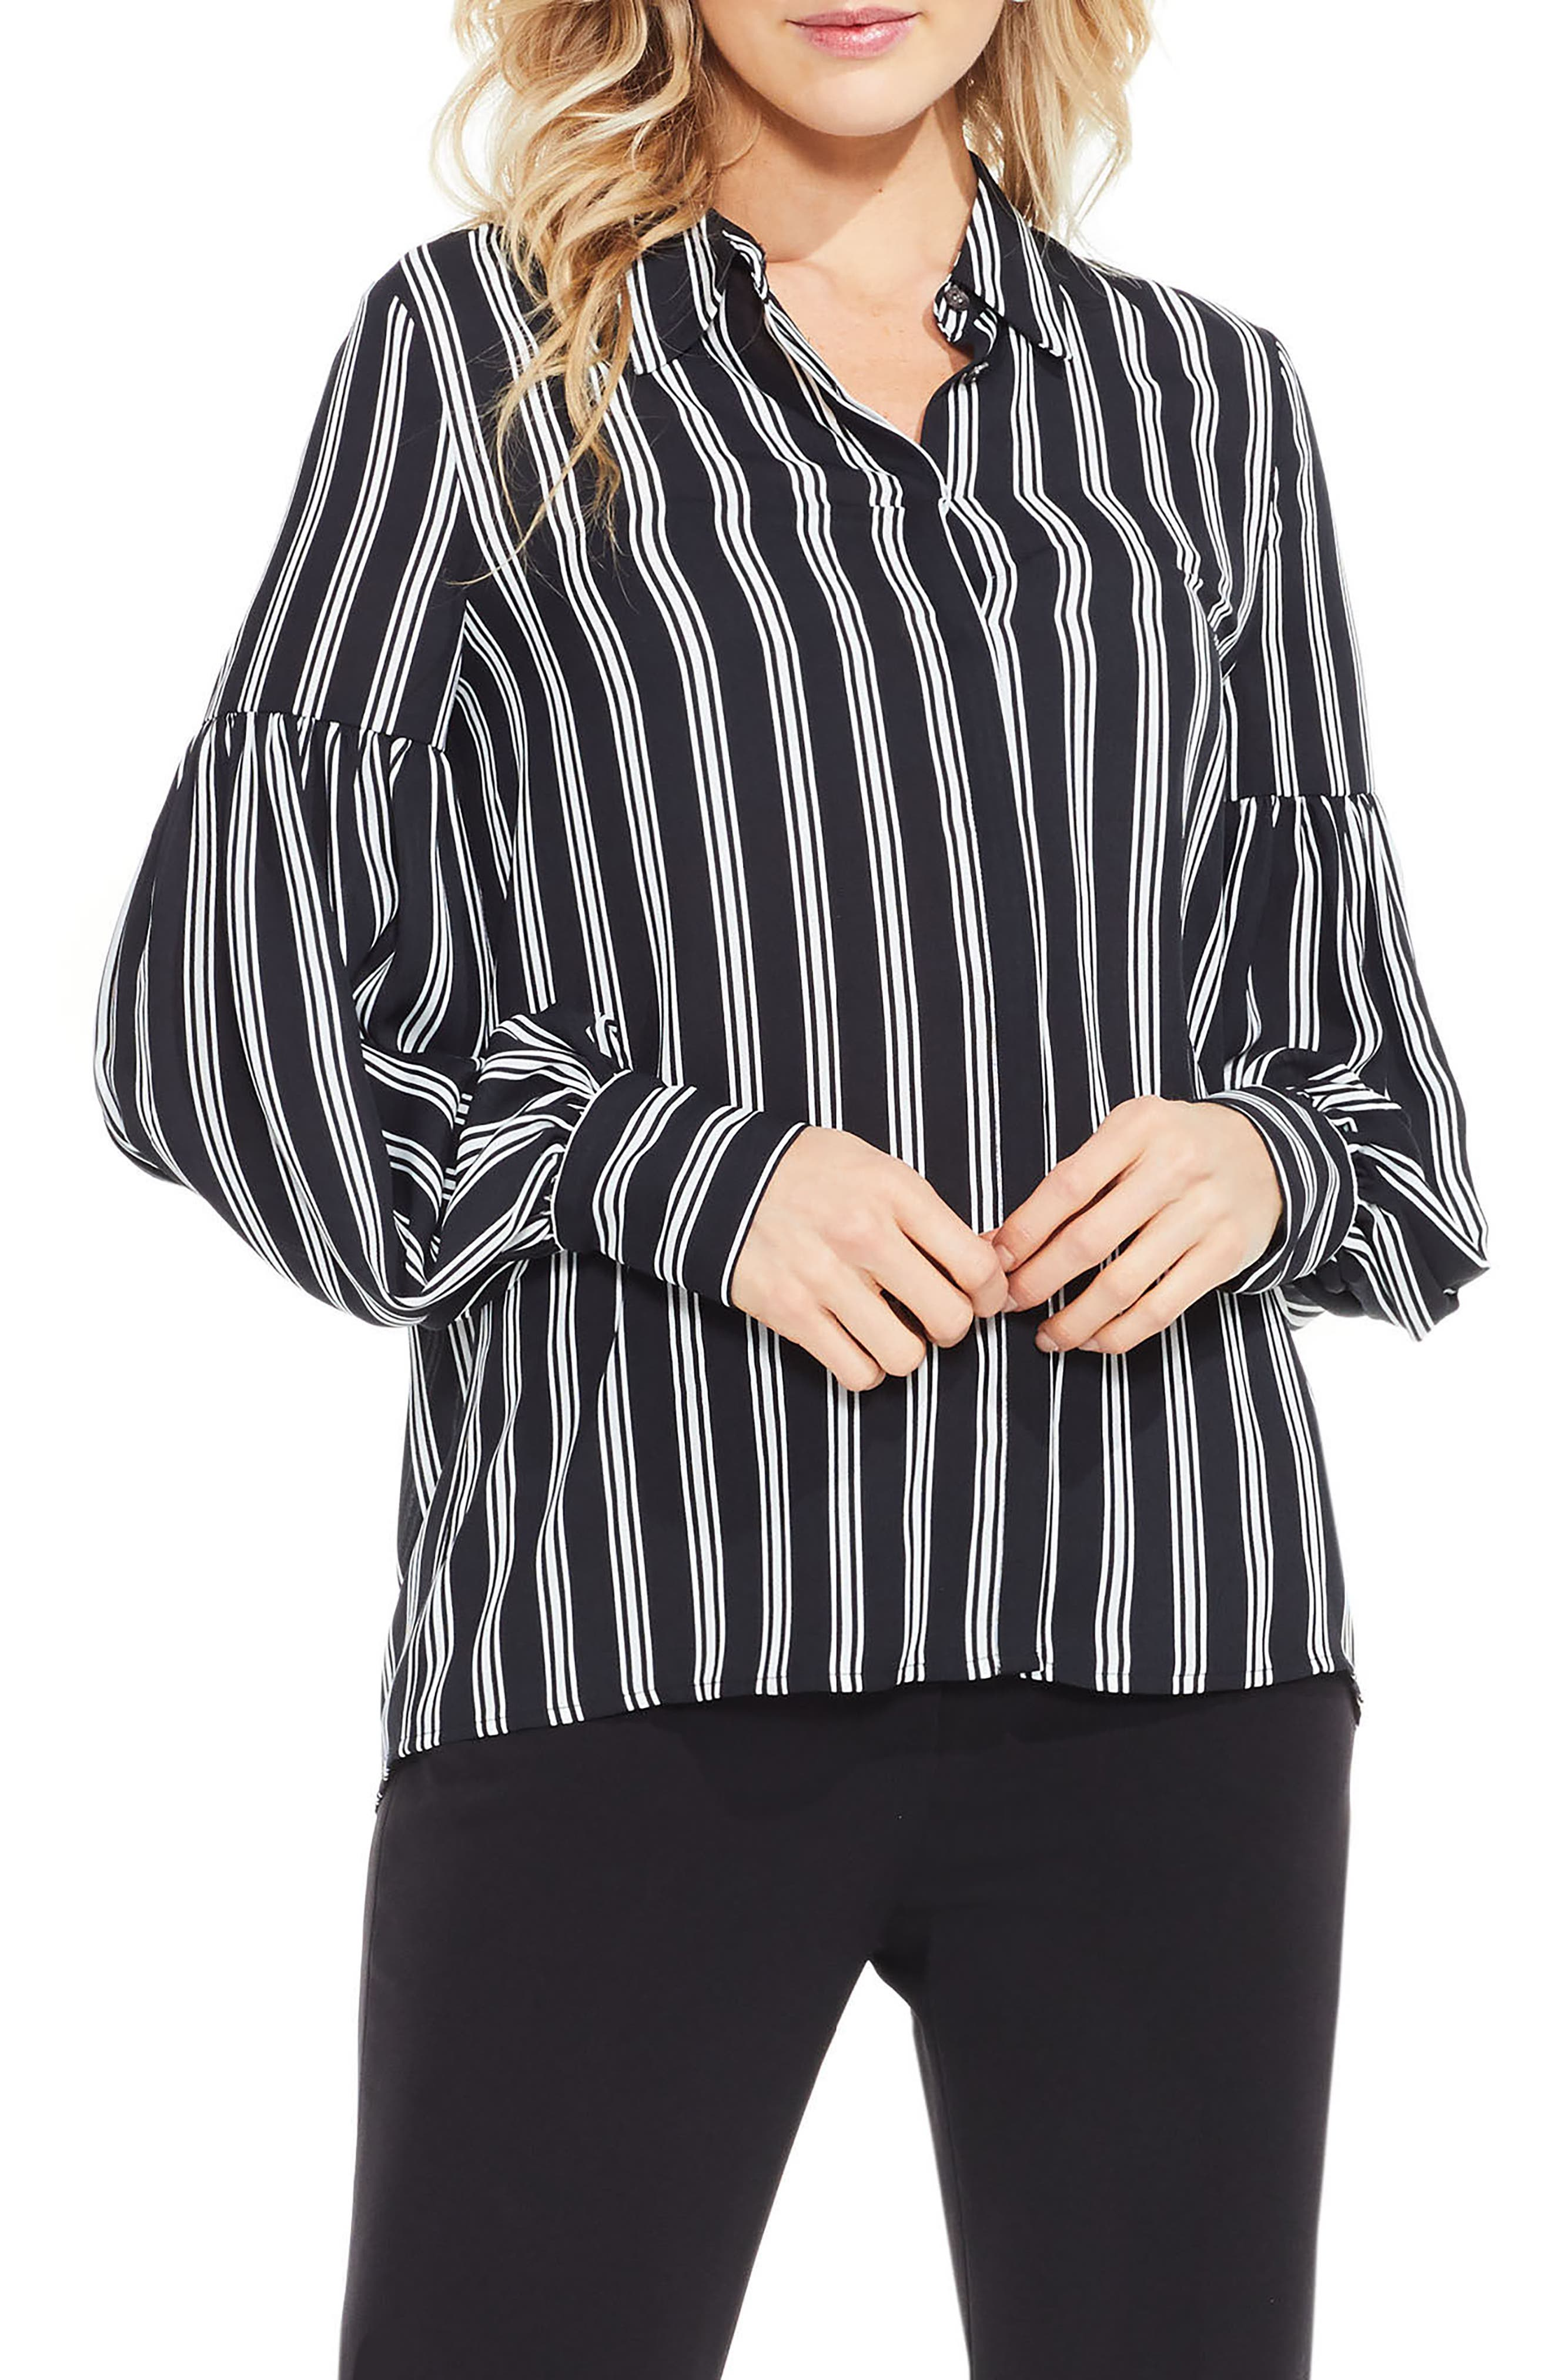 Stripe Puff Sleeve Blouse,                             Main thumbnail 1, color,                             006